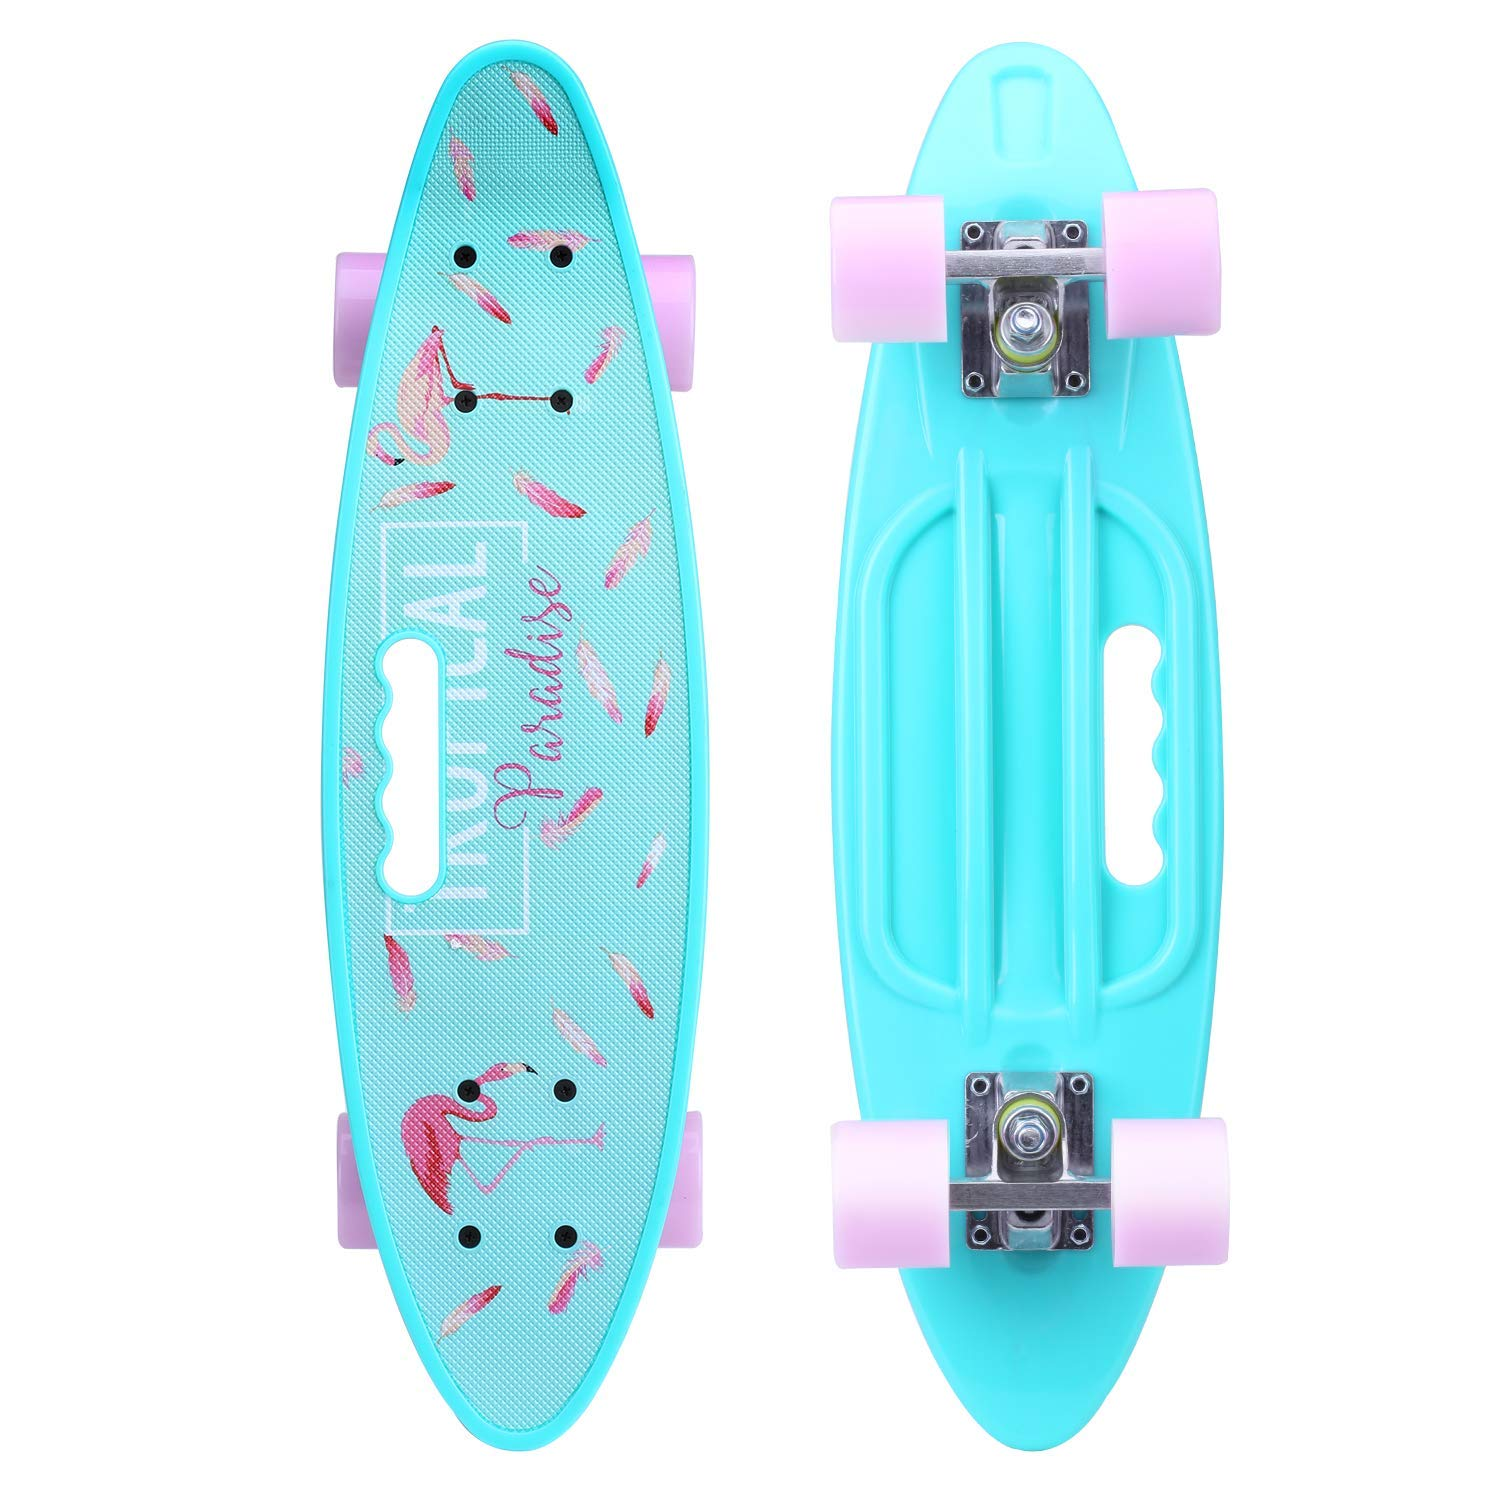 ENKEEO 22 Inch Cruiser Skateboard Complete Plastic Banana Board with Bendable Deck and Smooth PU Casters for Kids Boys Youths Beginners, 220 Ibs. (Flamingo)